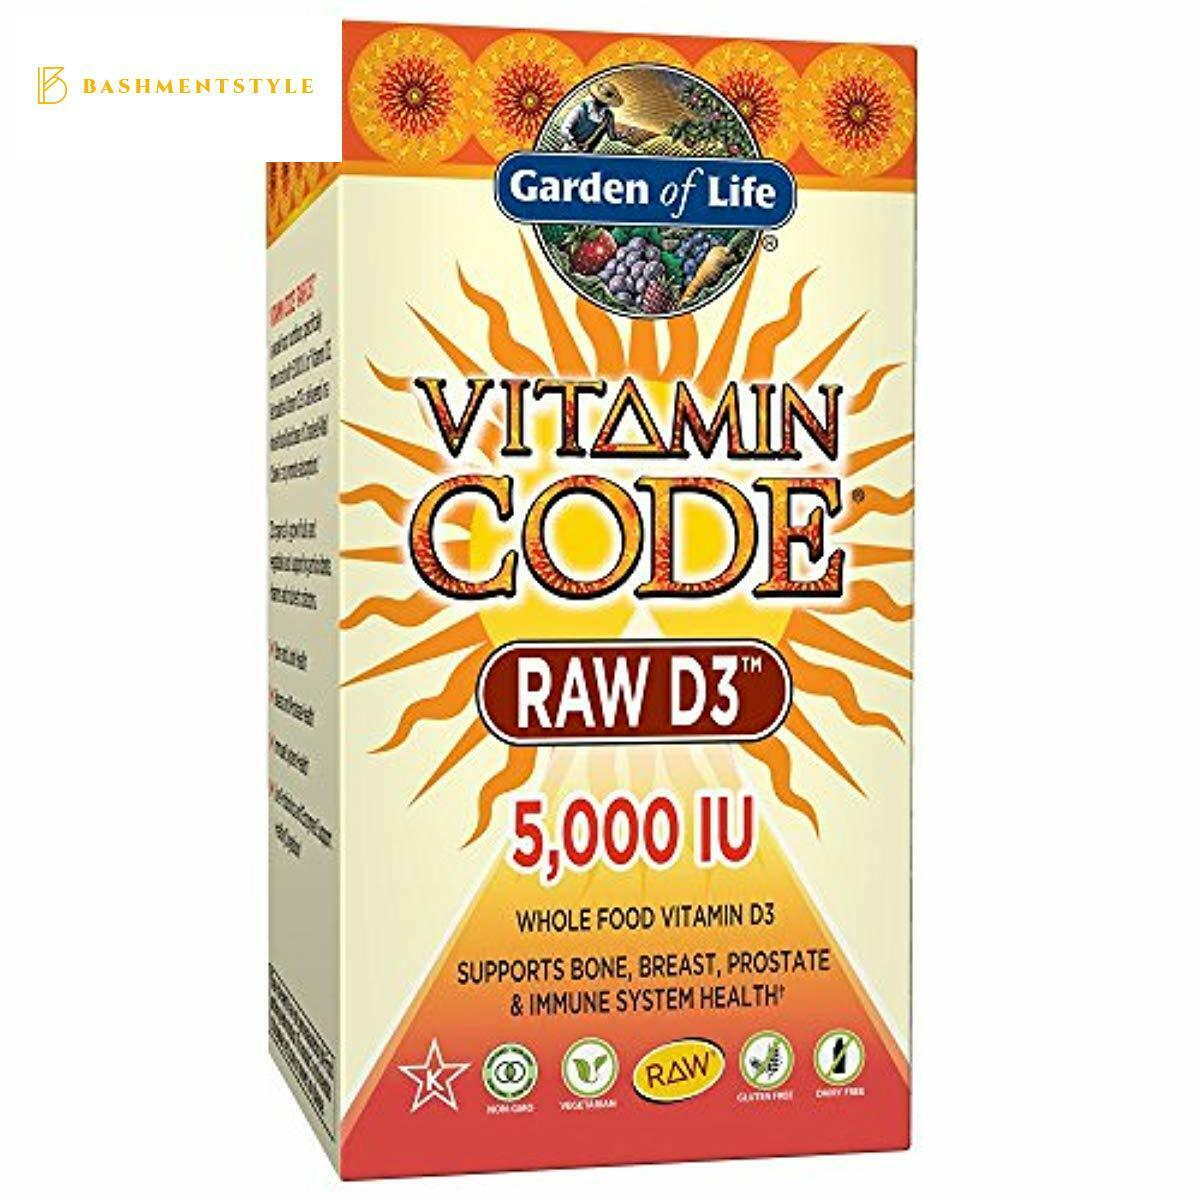 Garden of Life Raw D3 Supplement - Vitamin Code Whole Food V